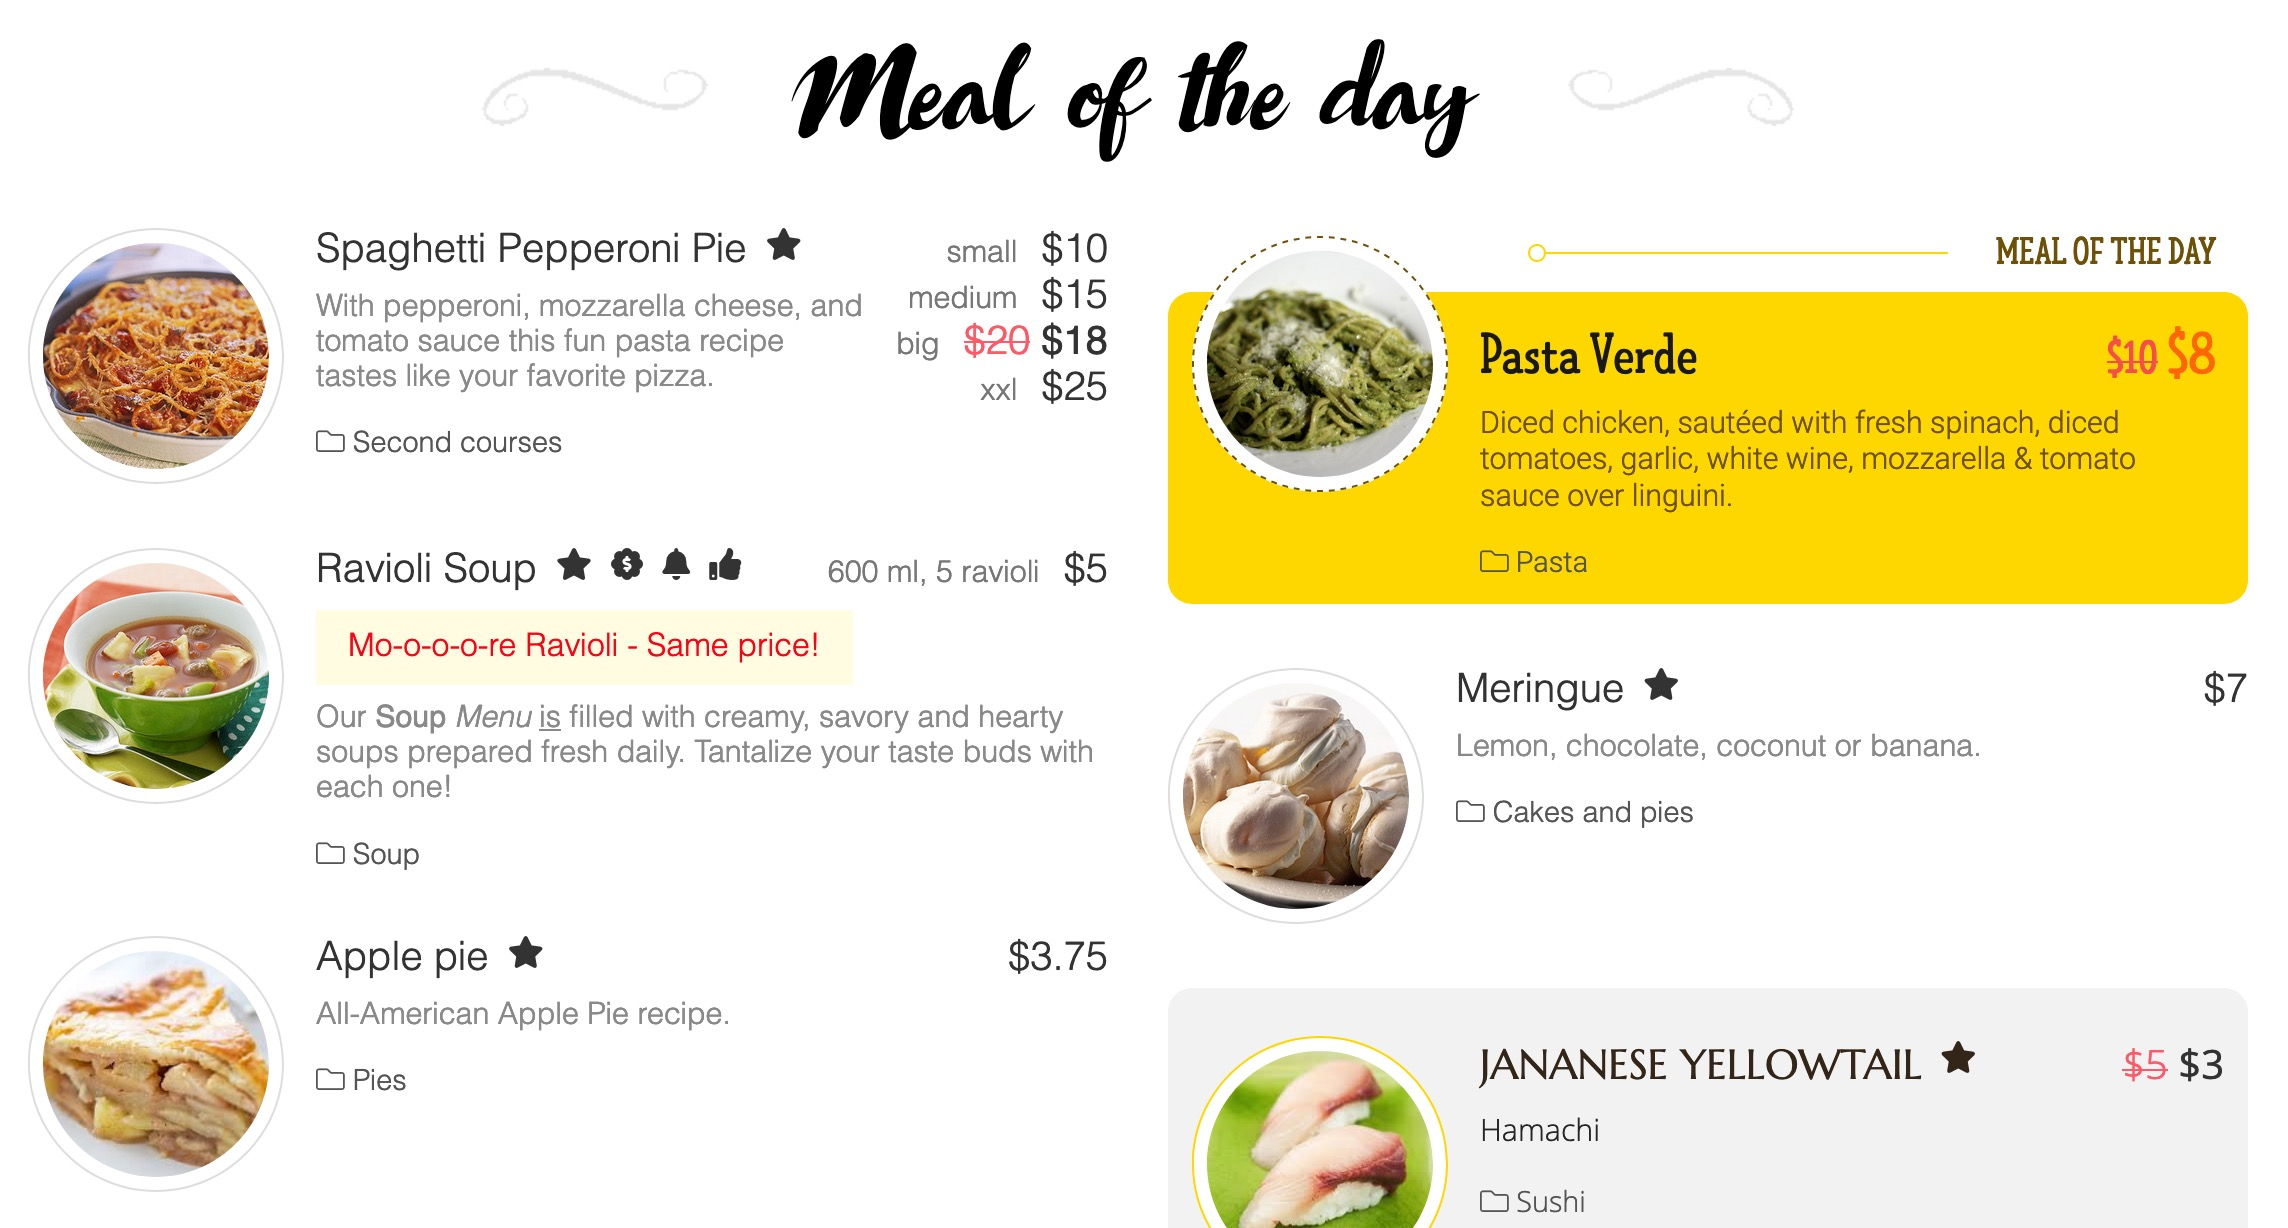 A new layout to Meals that allow to show all promot items in one page. You can show all promos together or separated by type. Currently 4 promo types are available: <ul><li>Meal of the day - an item that will show always on top of a category list disregarding orerding set in Admin.</li><li>Special offer - it is a text message that will show up in a sepcial above a meal description.</li><li>New - will mark meal as with a new badge to differ from other meals.</li><li>Recommended - will show recommended label over menu box at the lower right to promote a meal.</li></ul>constant-hint/title